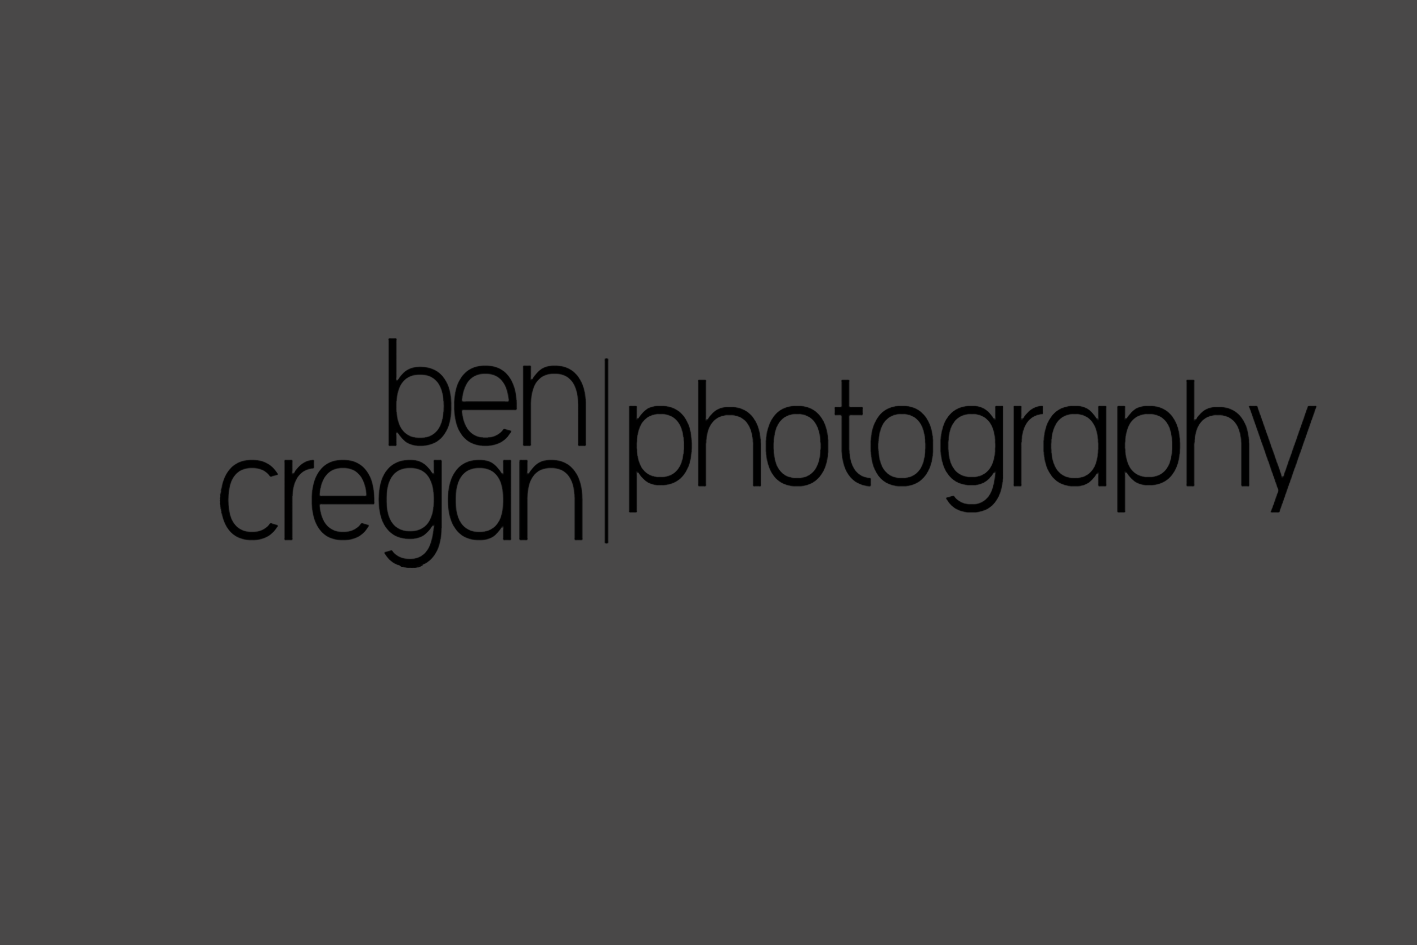 Ben Cregan Photography